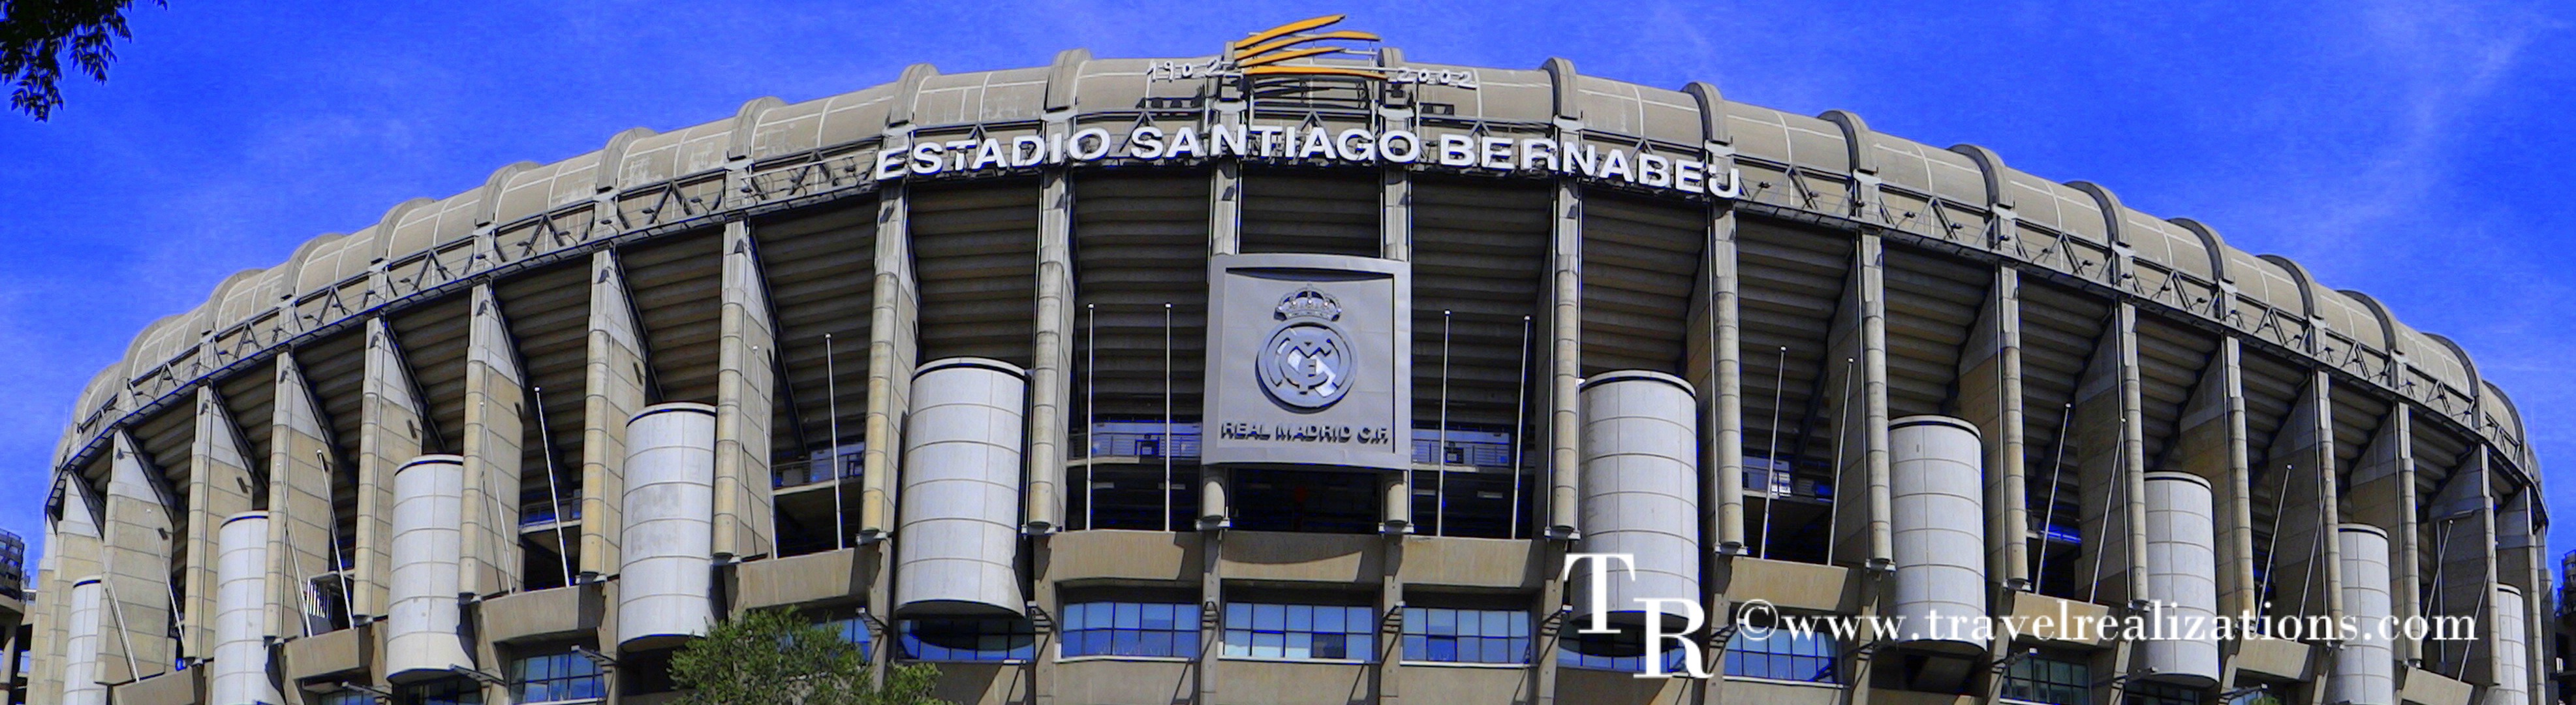 Santiago Bernabeu Stadium – The home of Real Madrid!